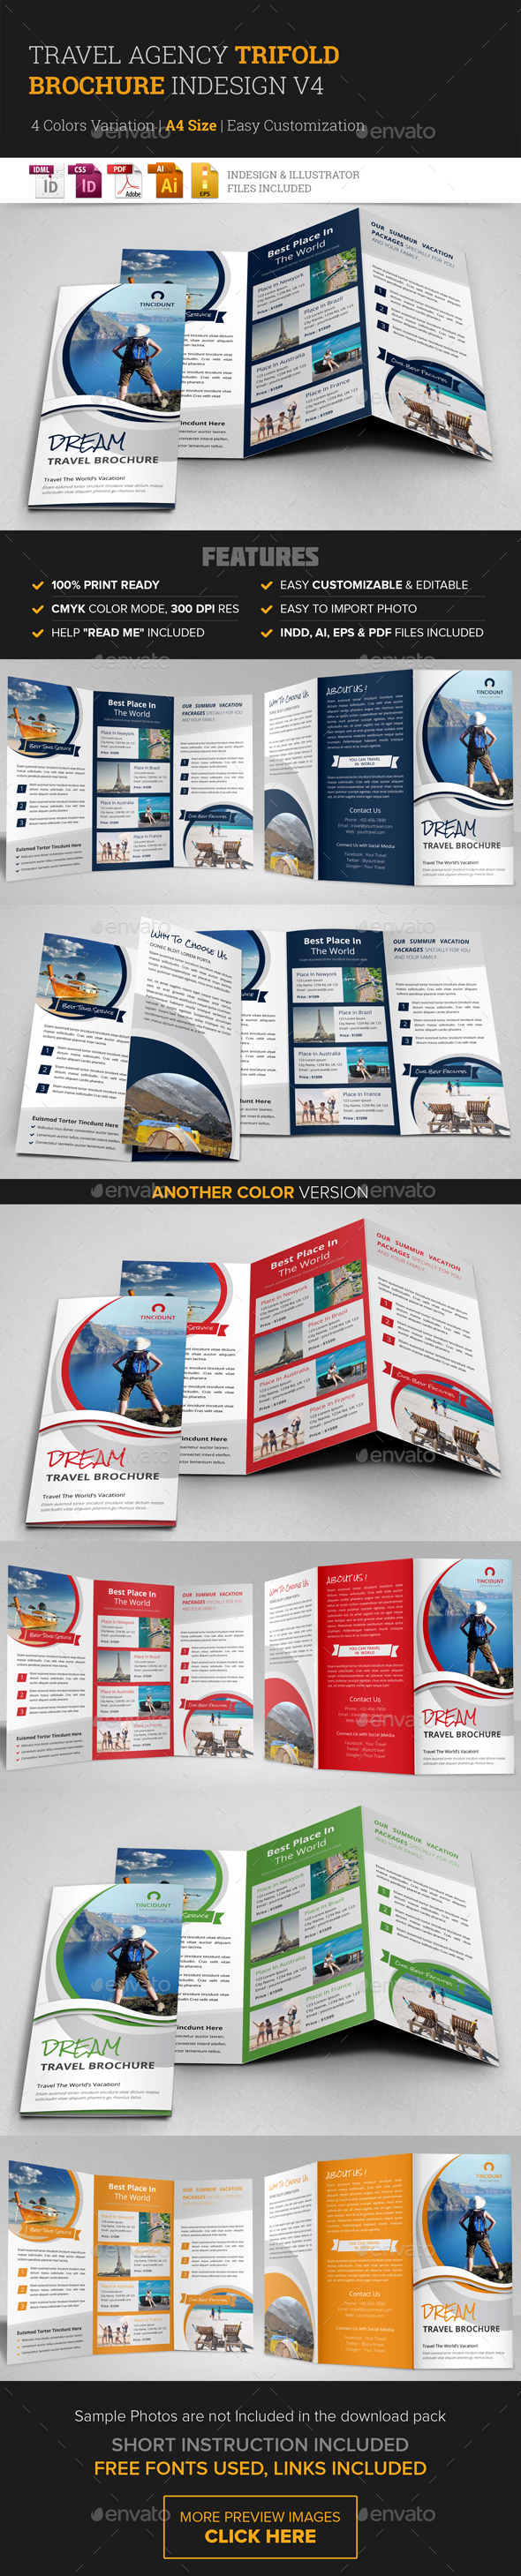 Travel Agency Trifold Brochure Design v4 - Corporate Business Cards